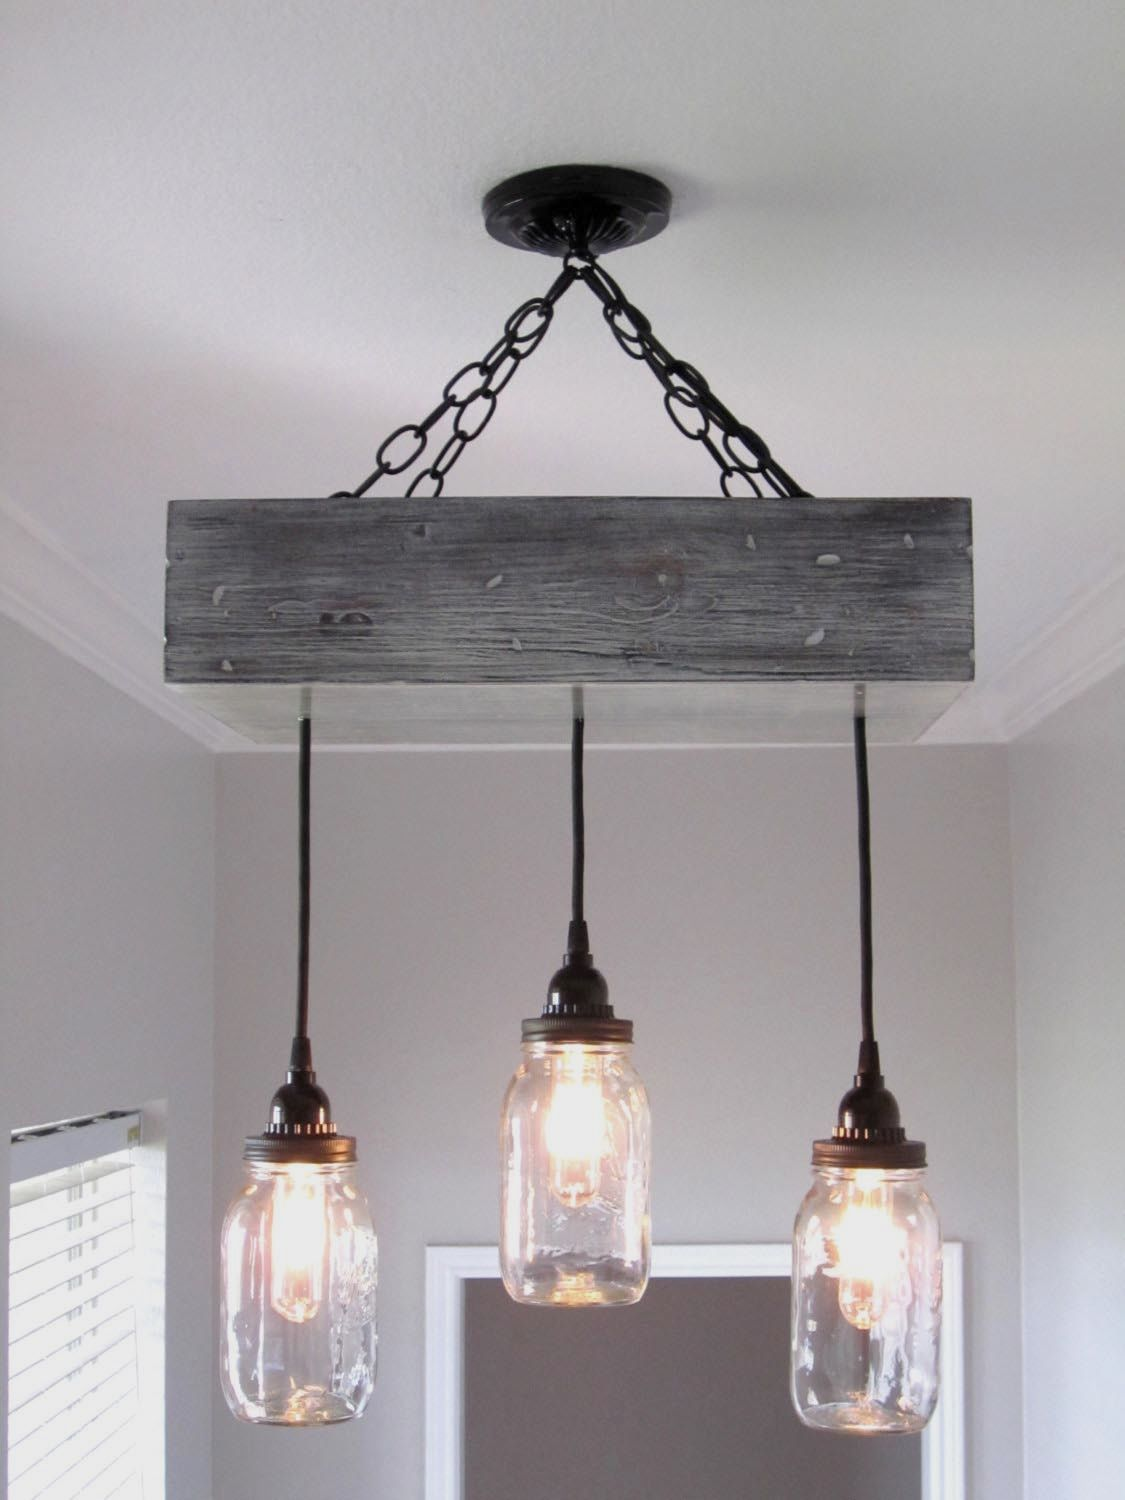 Creative Rustic Lighting Fixture Ideas To Complete A Cottage